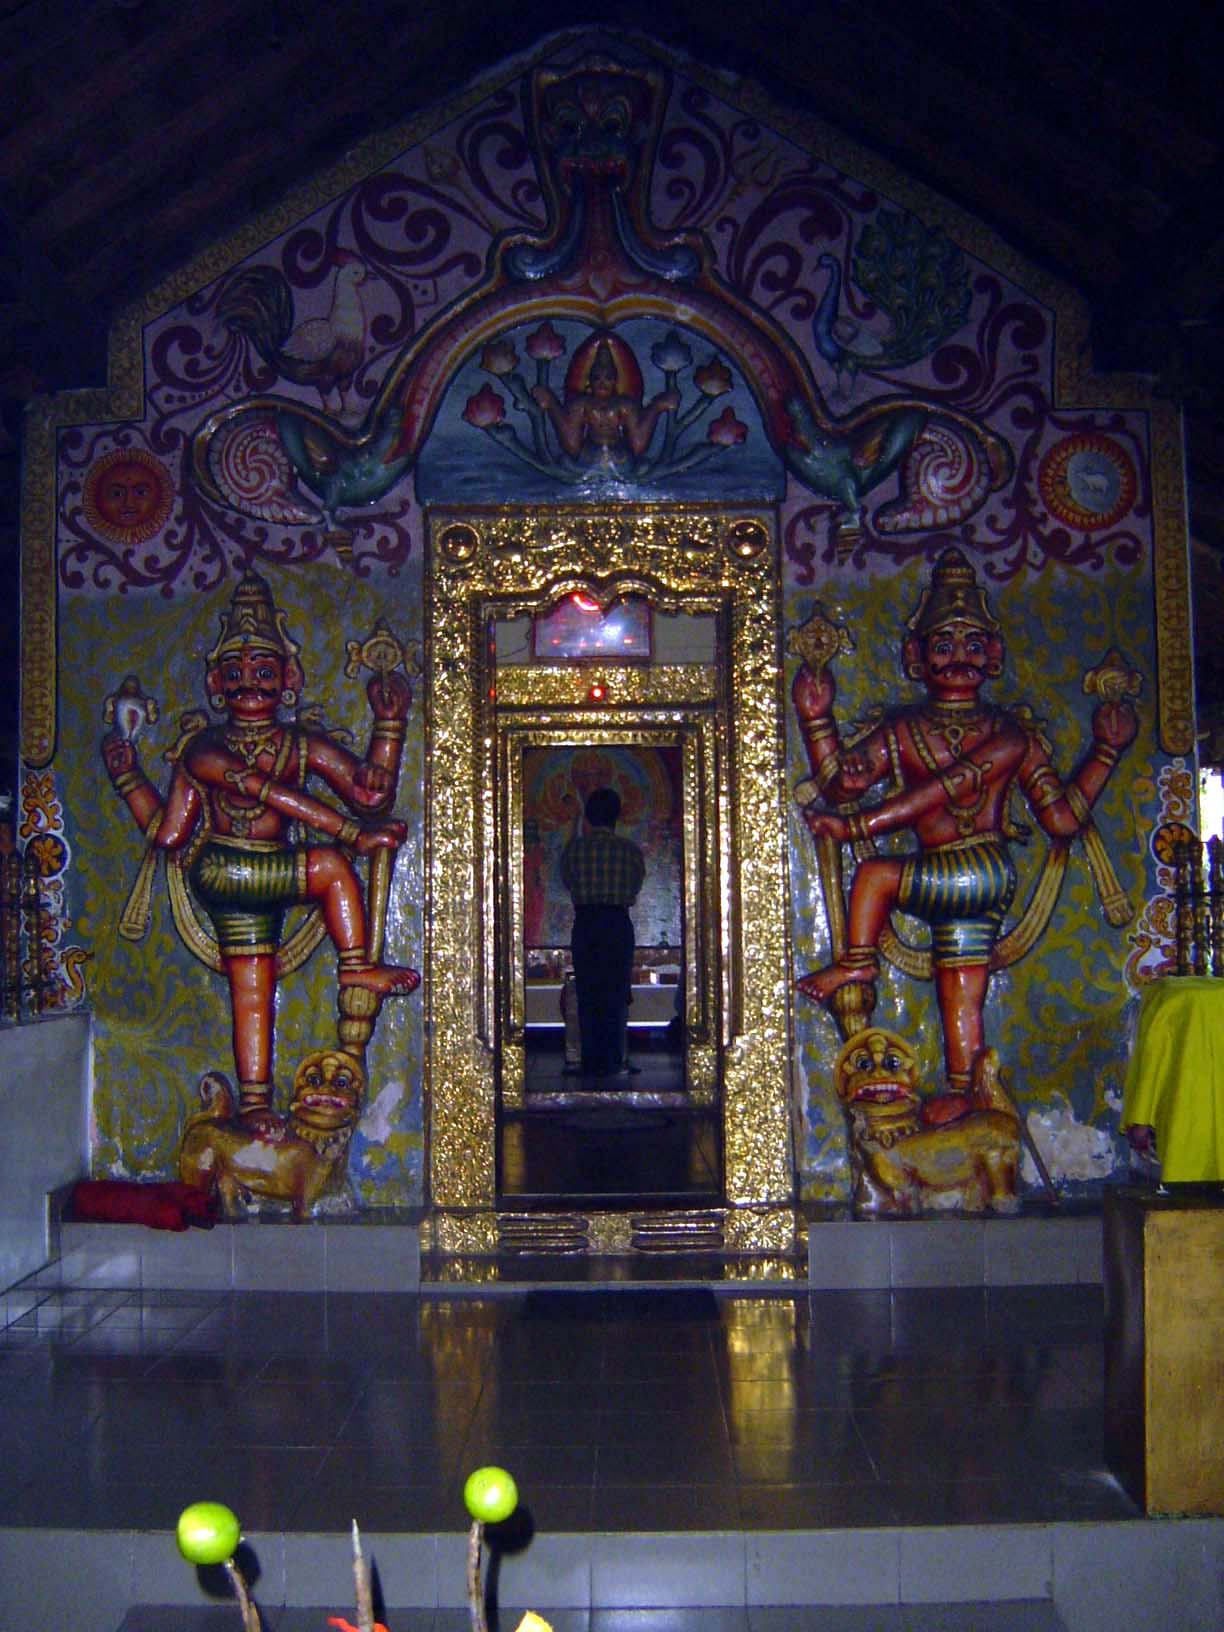 Sri Lanka: Kandy and the Temple of the Tooth